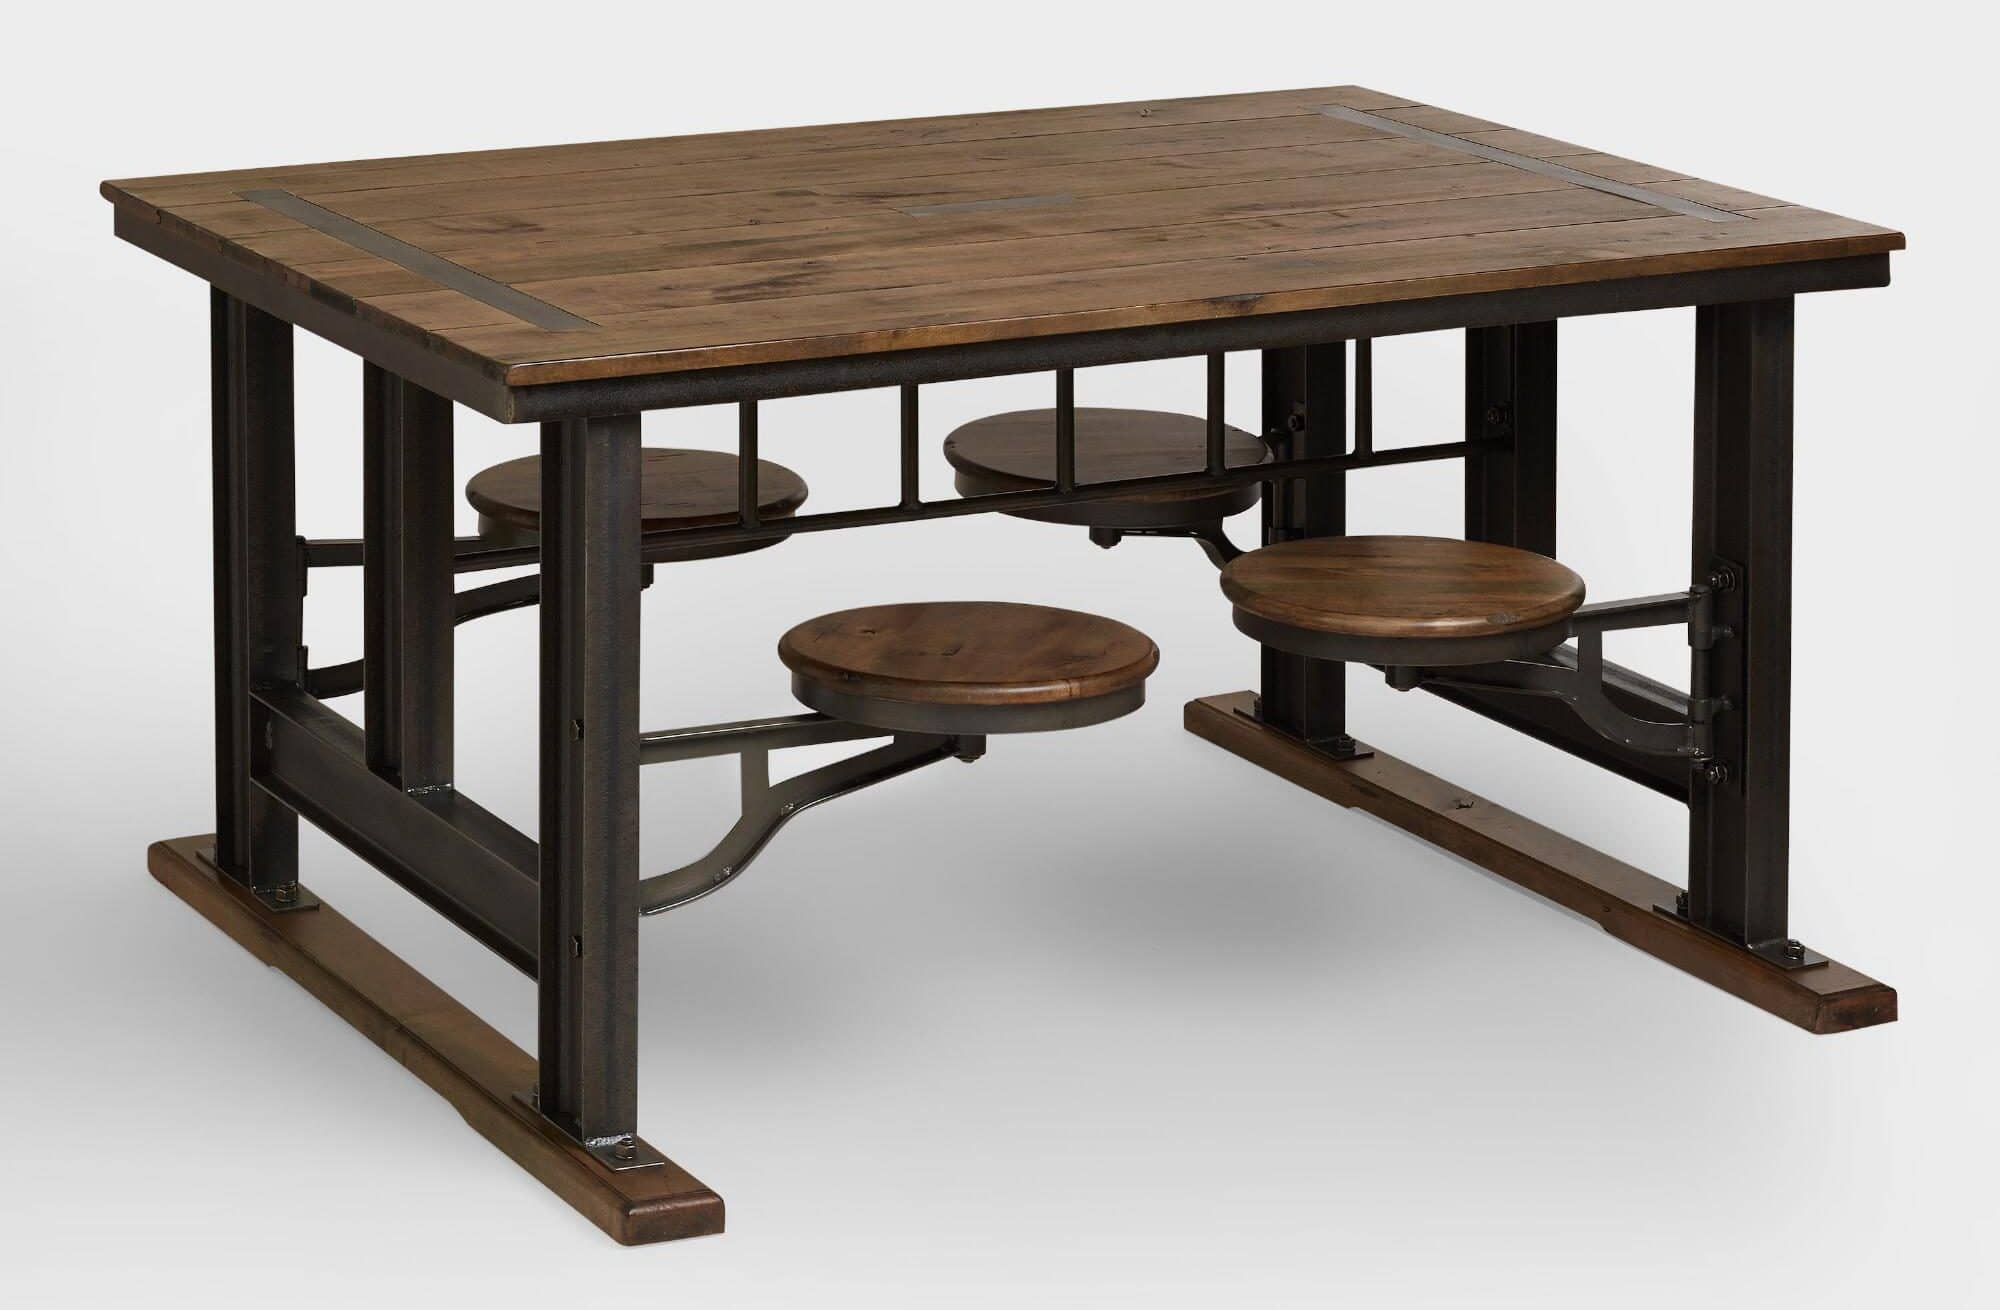 Rustic Table with Built-In Seating Galvin Cafeteria